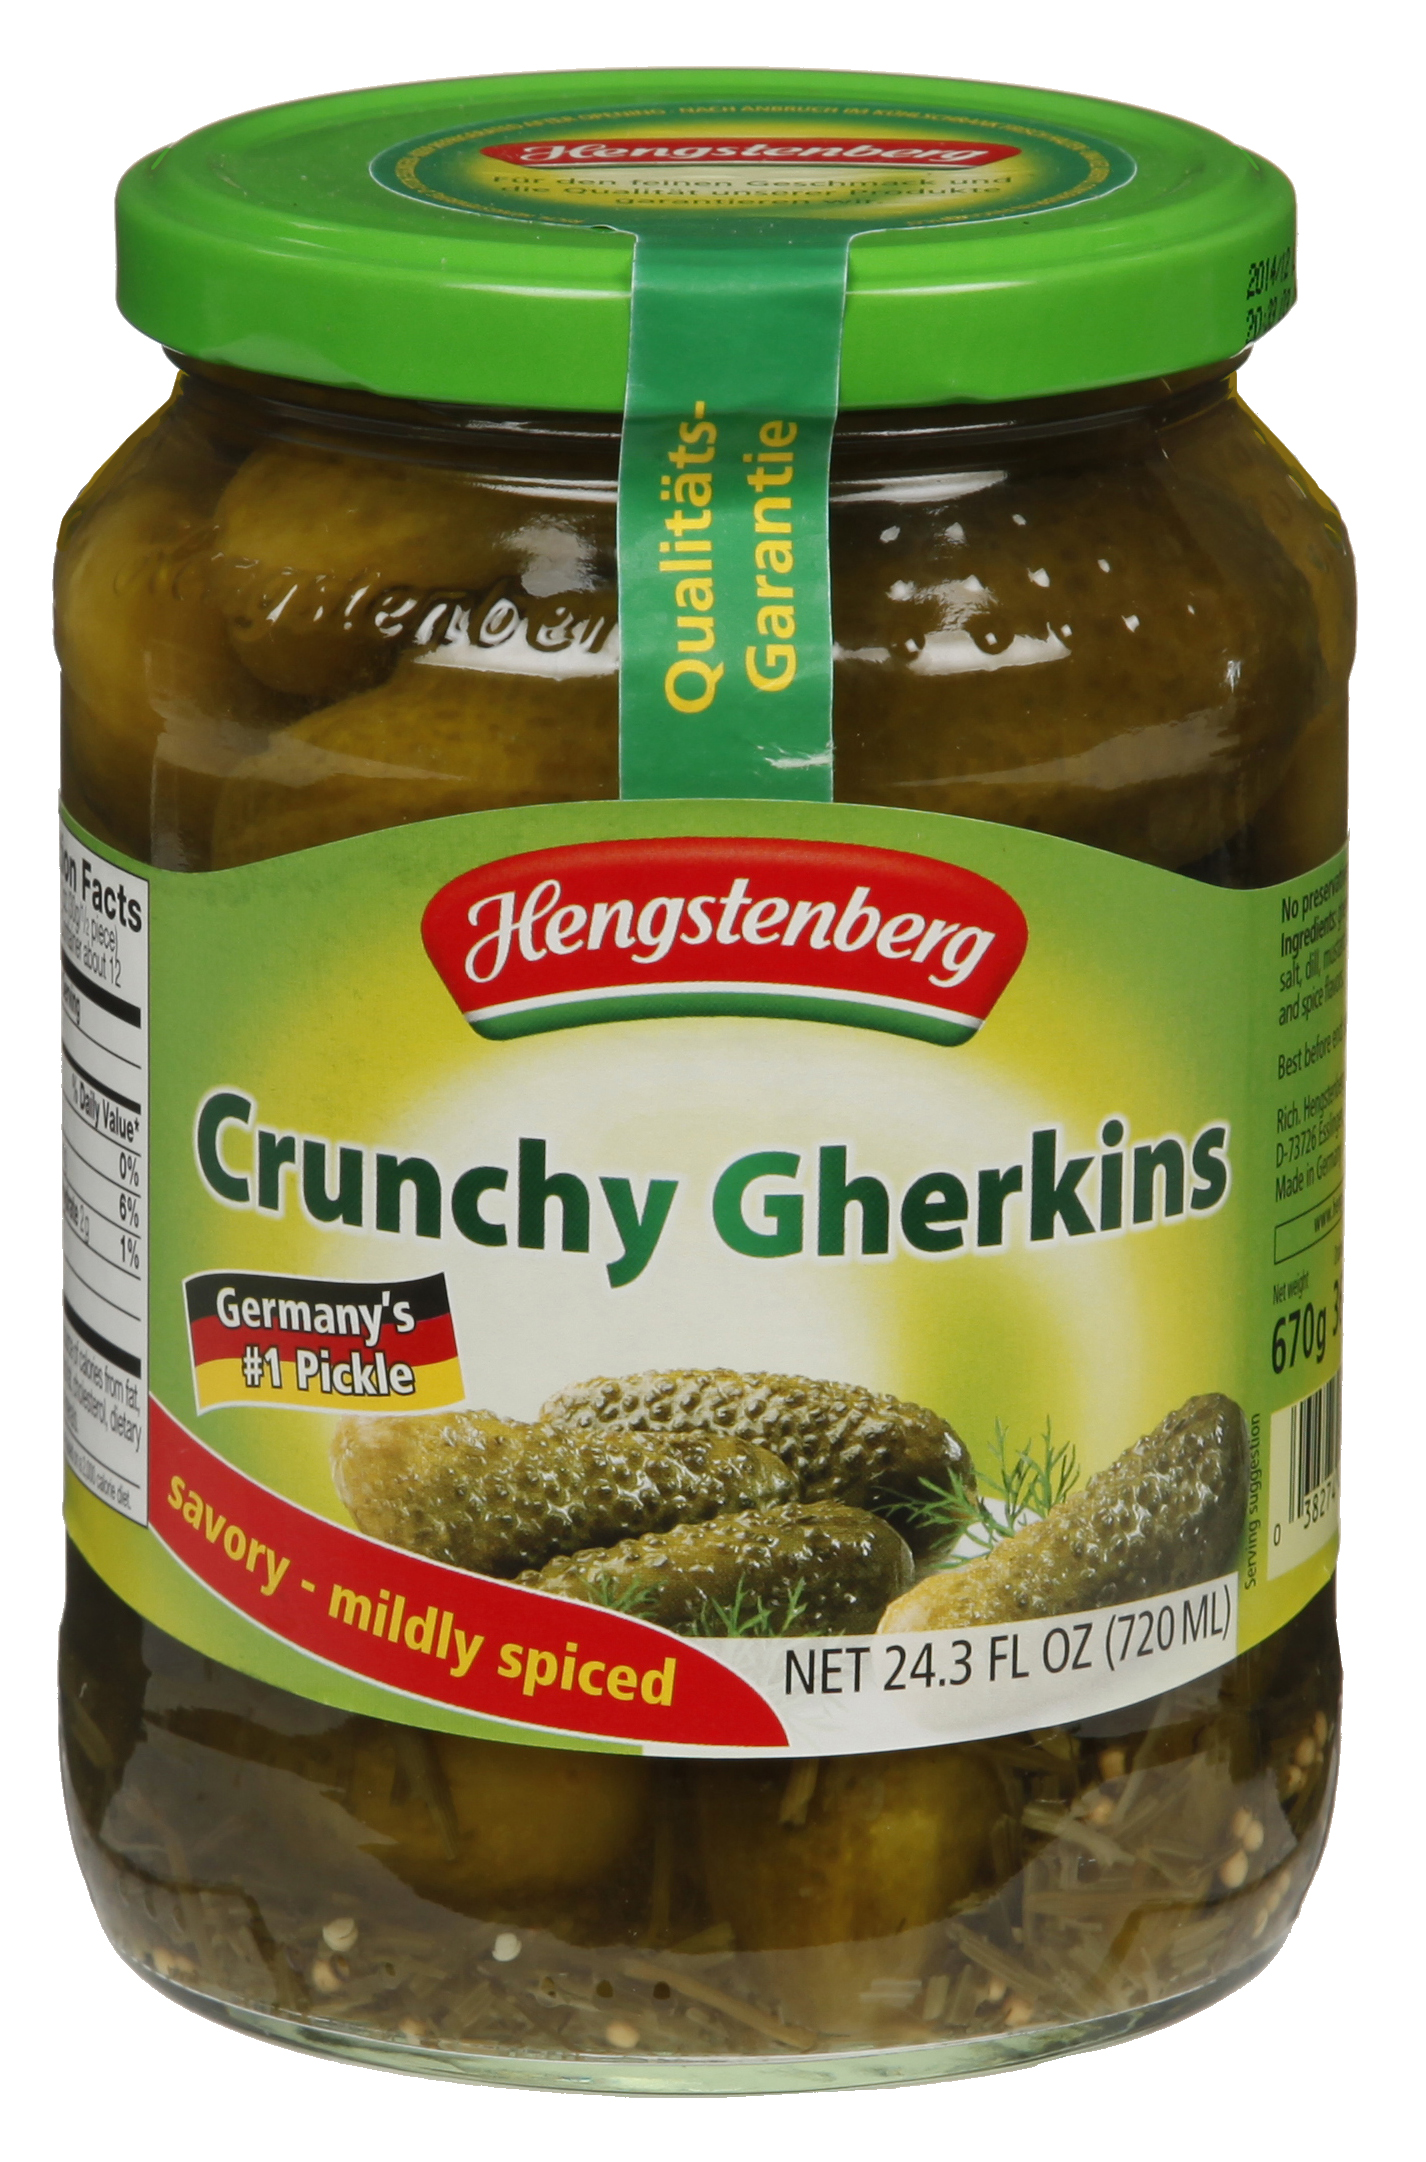 Hengstenberg Crunchy Gherkins (German Pickles)